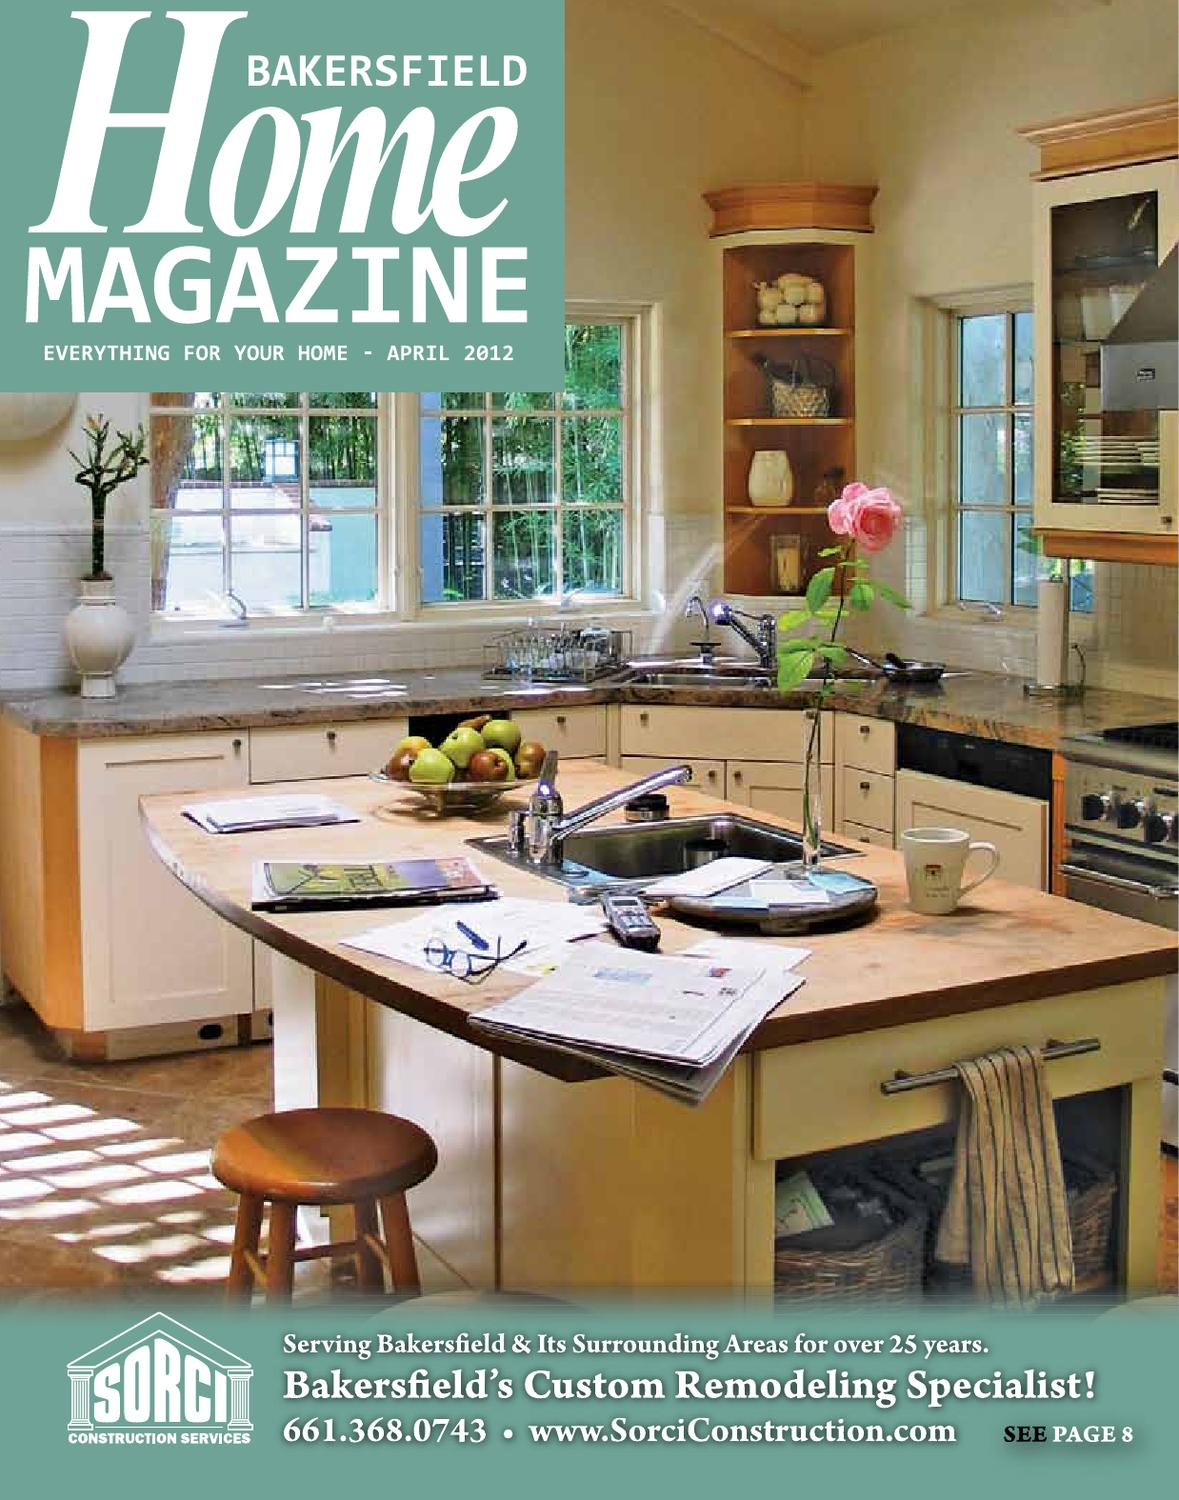 August 2012 Bakersfield Home Magazine By Bakersfield